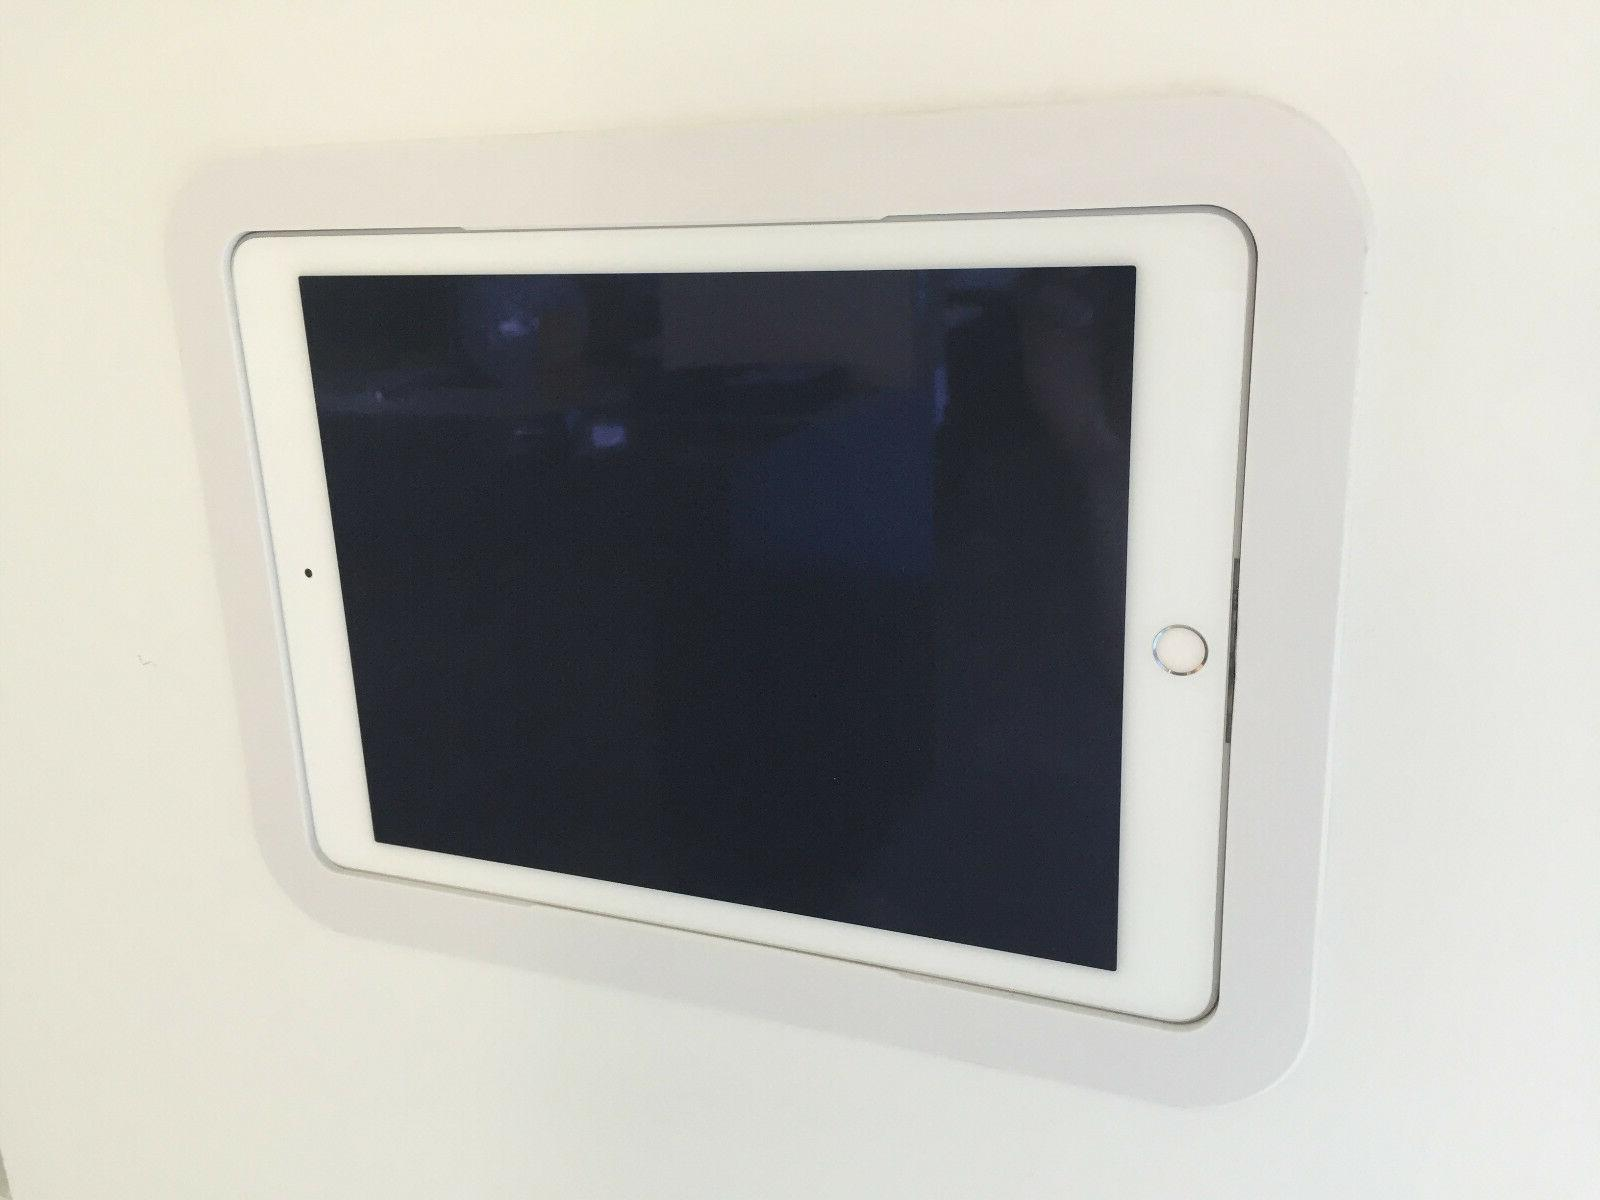 In - Wall iPad Mount for iPad Air1, Air2, Pro9.7, and 2017 5